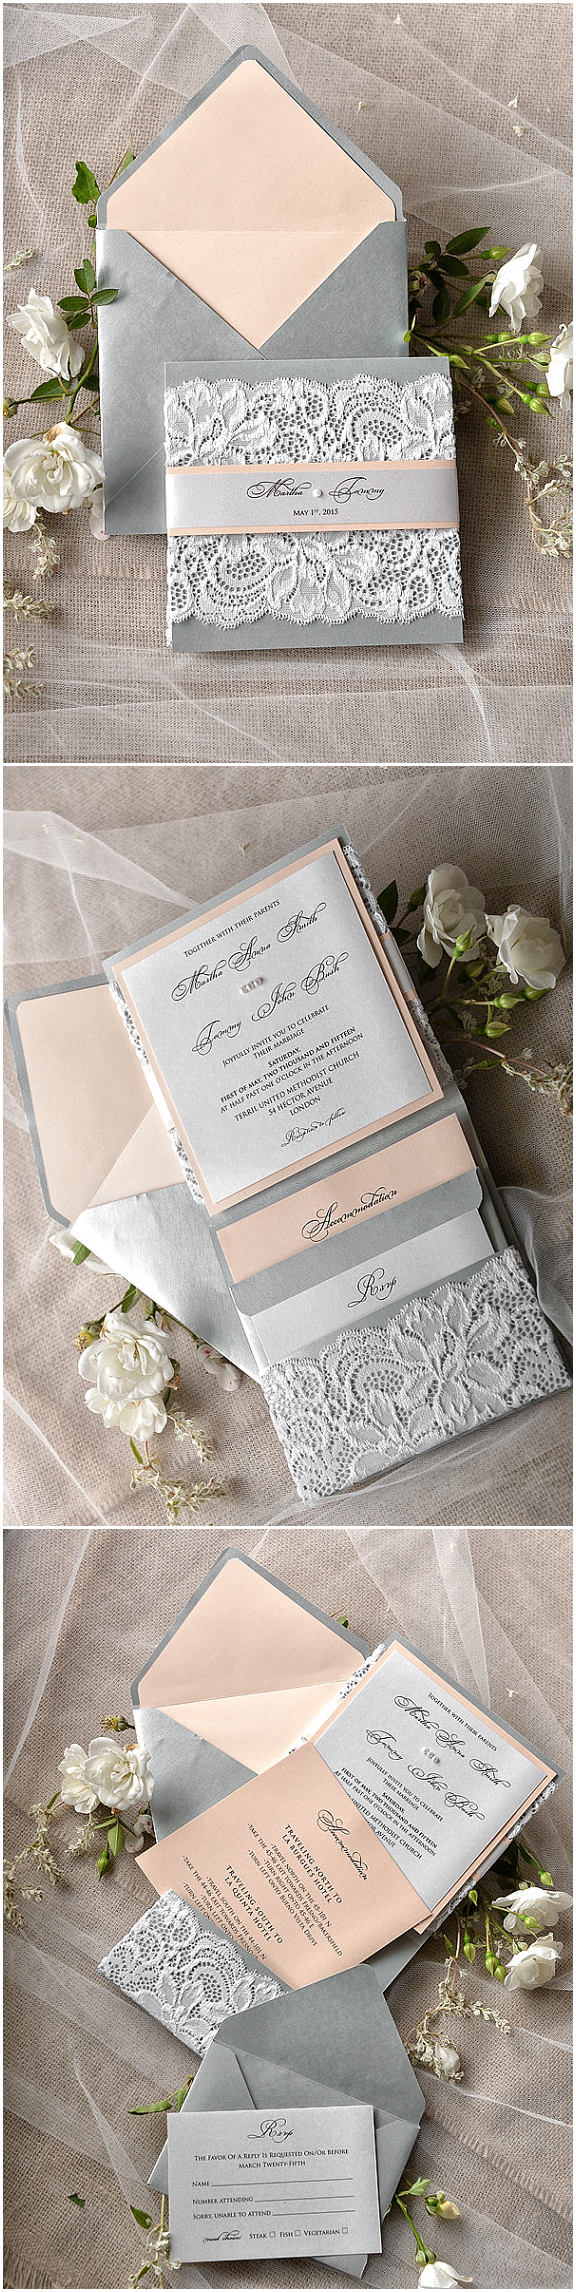 Top 10 Rustic Wedding Invitations To